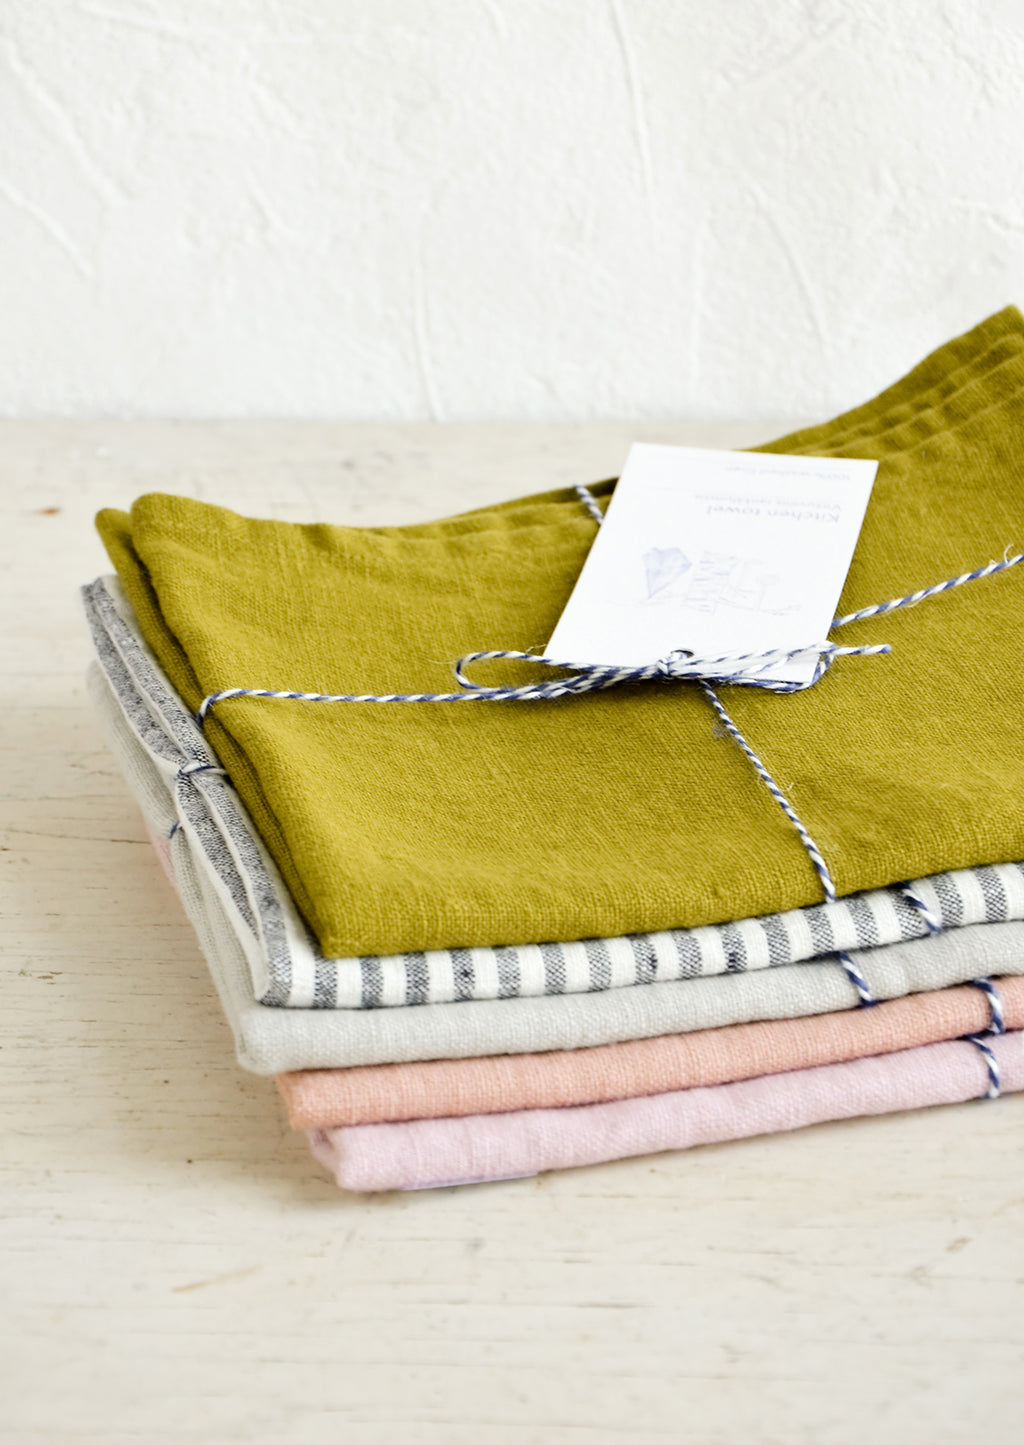 2: A stack of folded colorful linen kitchen towels